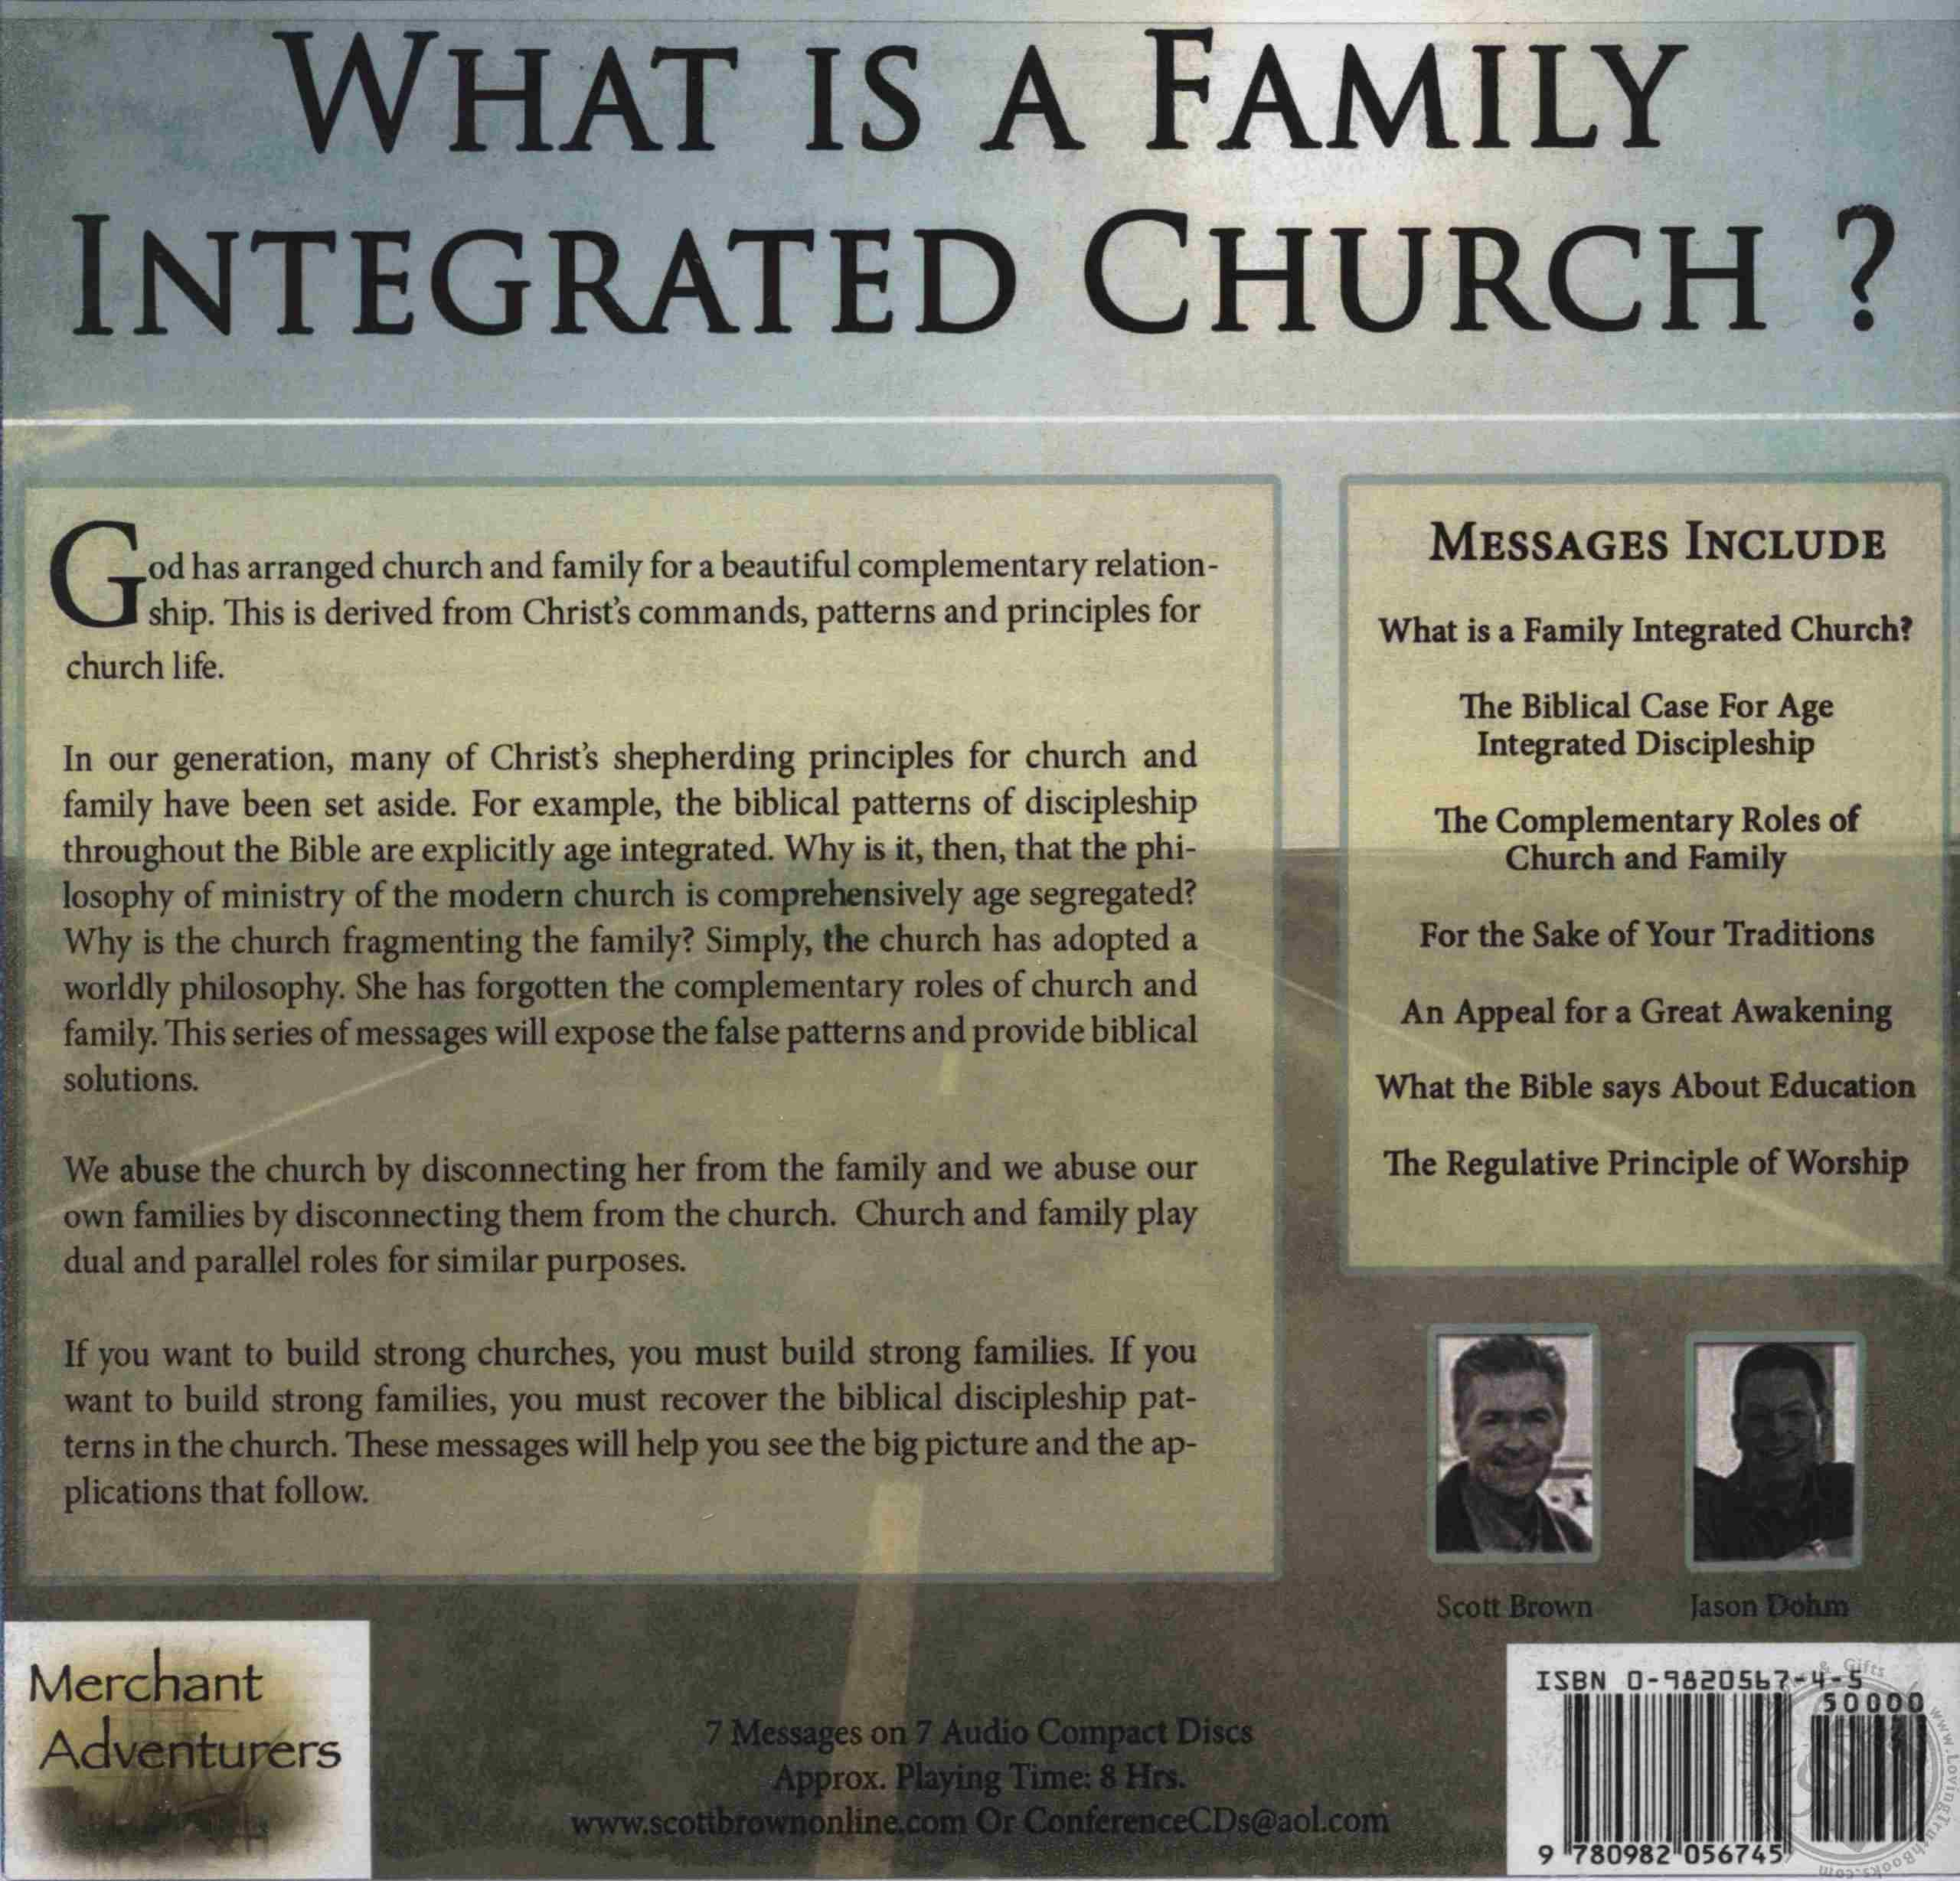 What is a Family Integrated Church? by Scott Brown, Jason